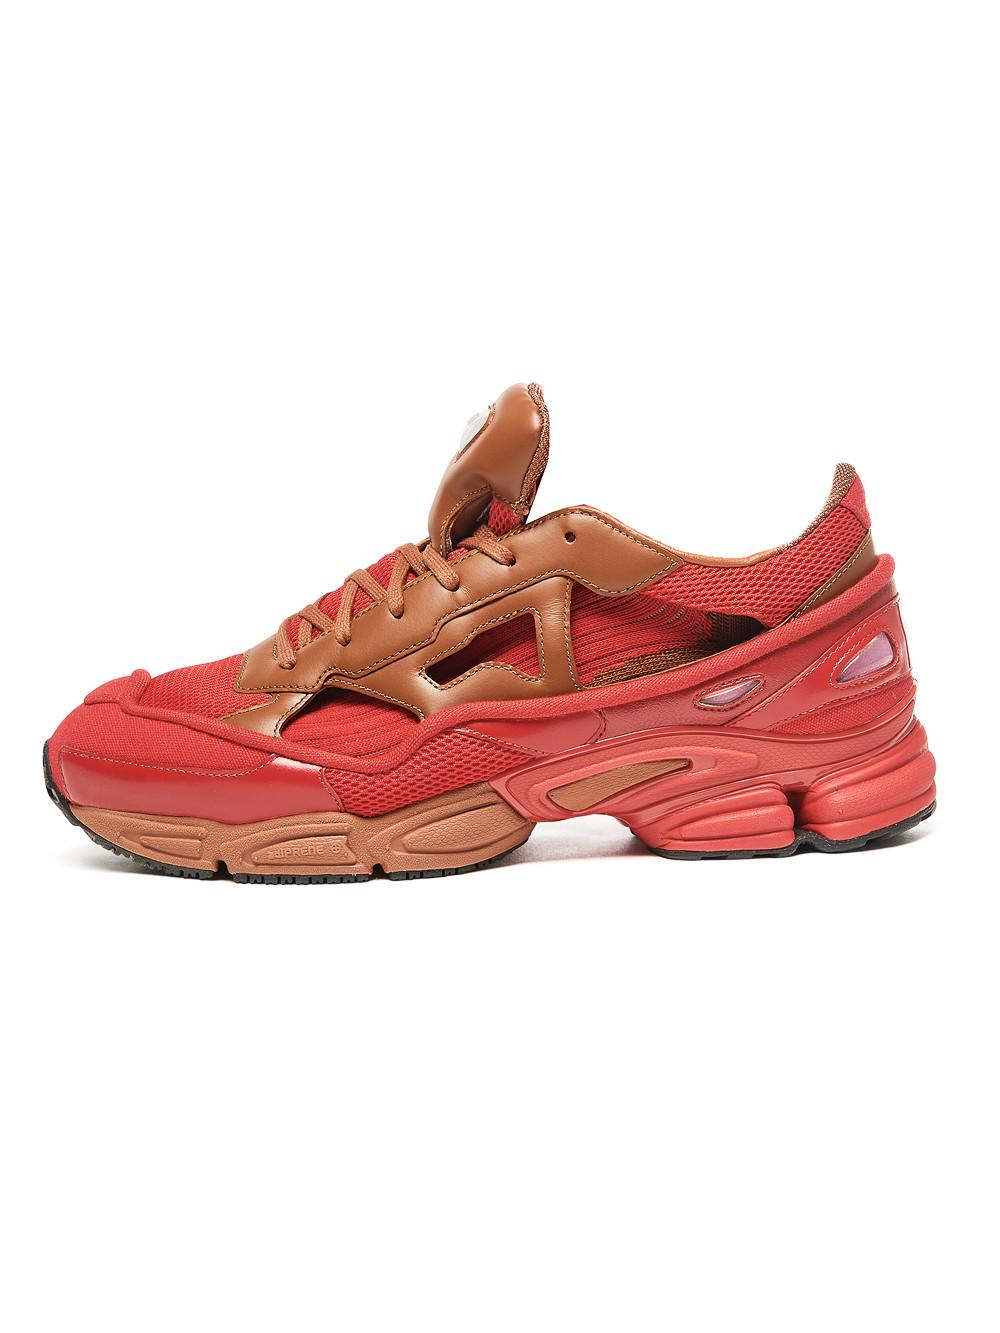 34a7b9e5ffcd Lyst - adidas By Raf Simons Dust Rust Replicant Ozweego Sneakers in ...